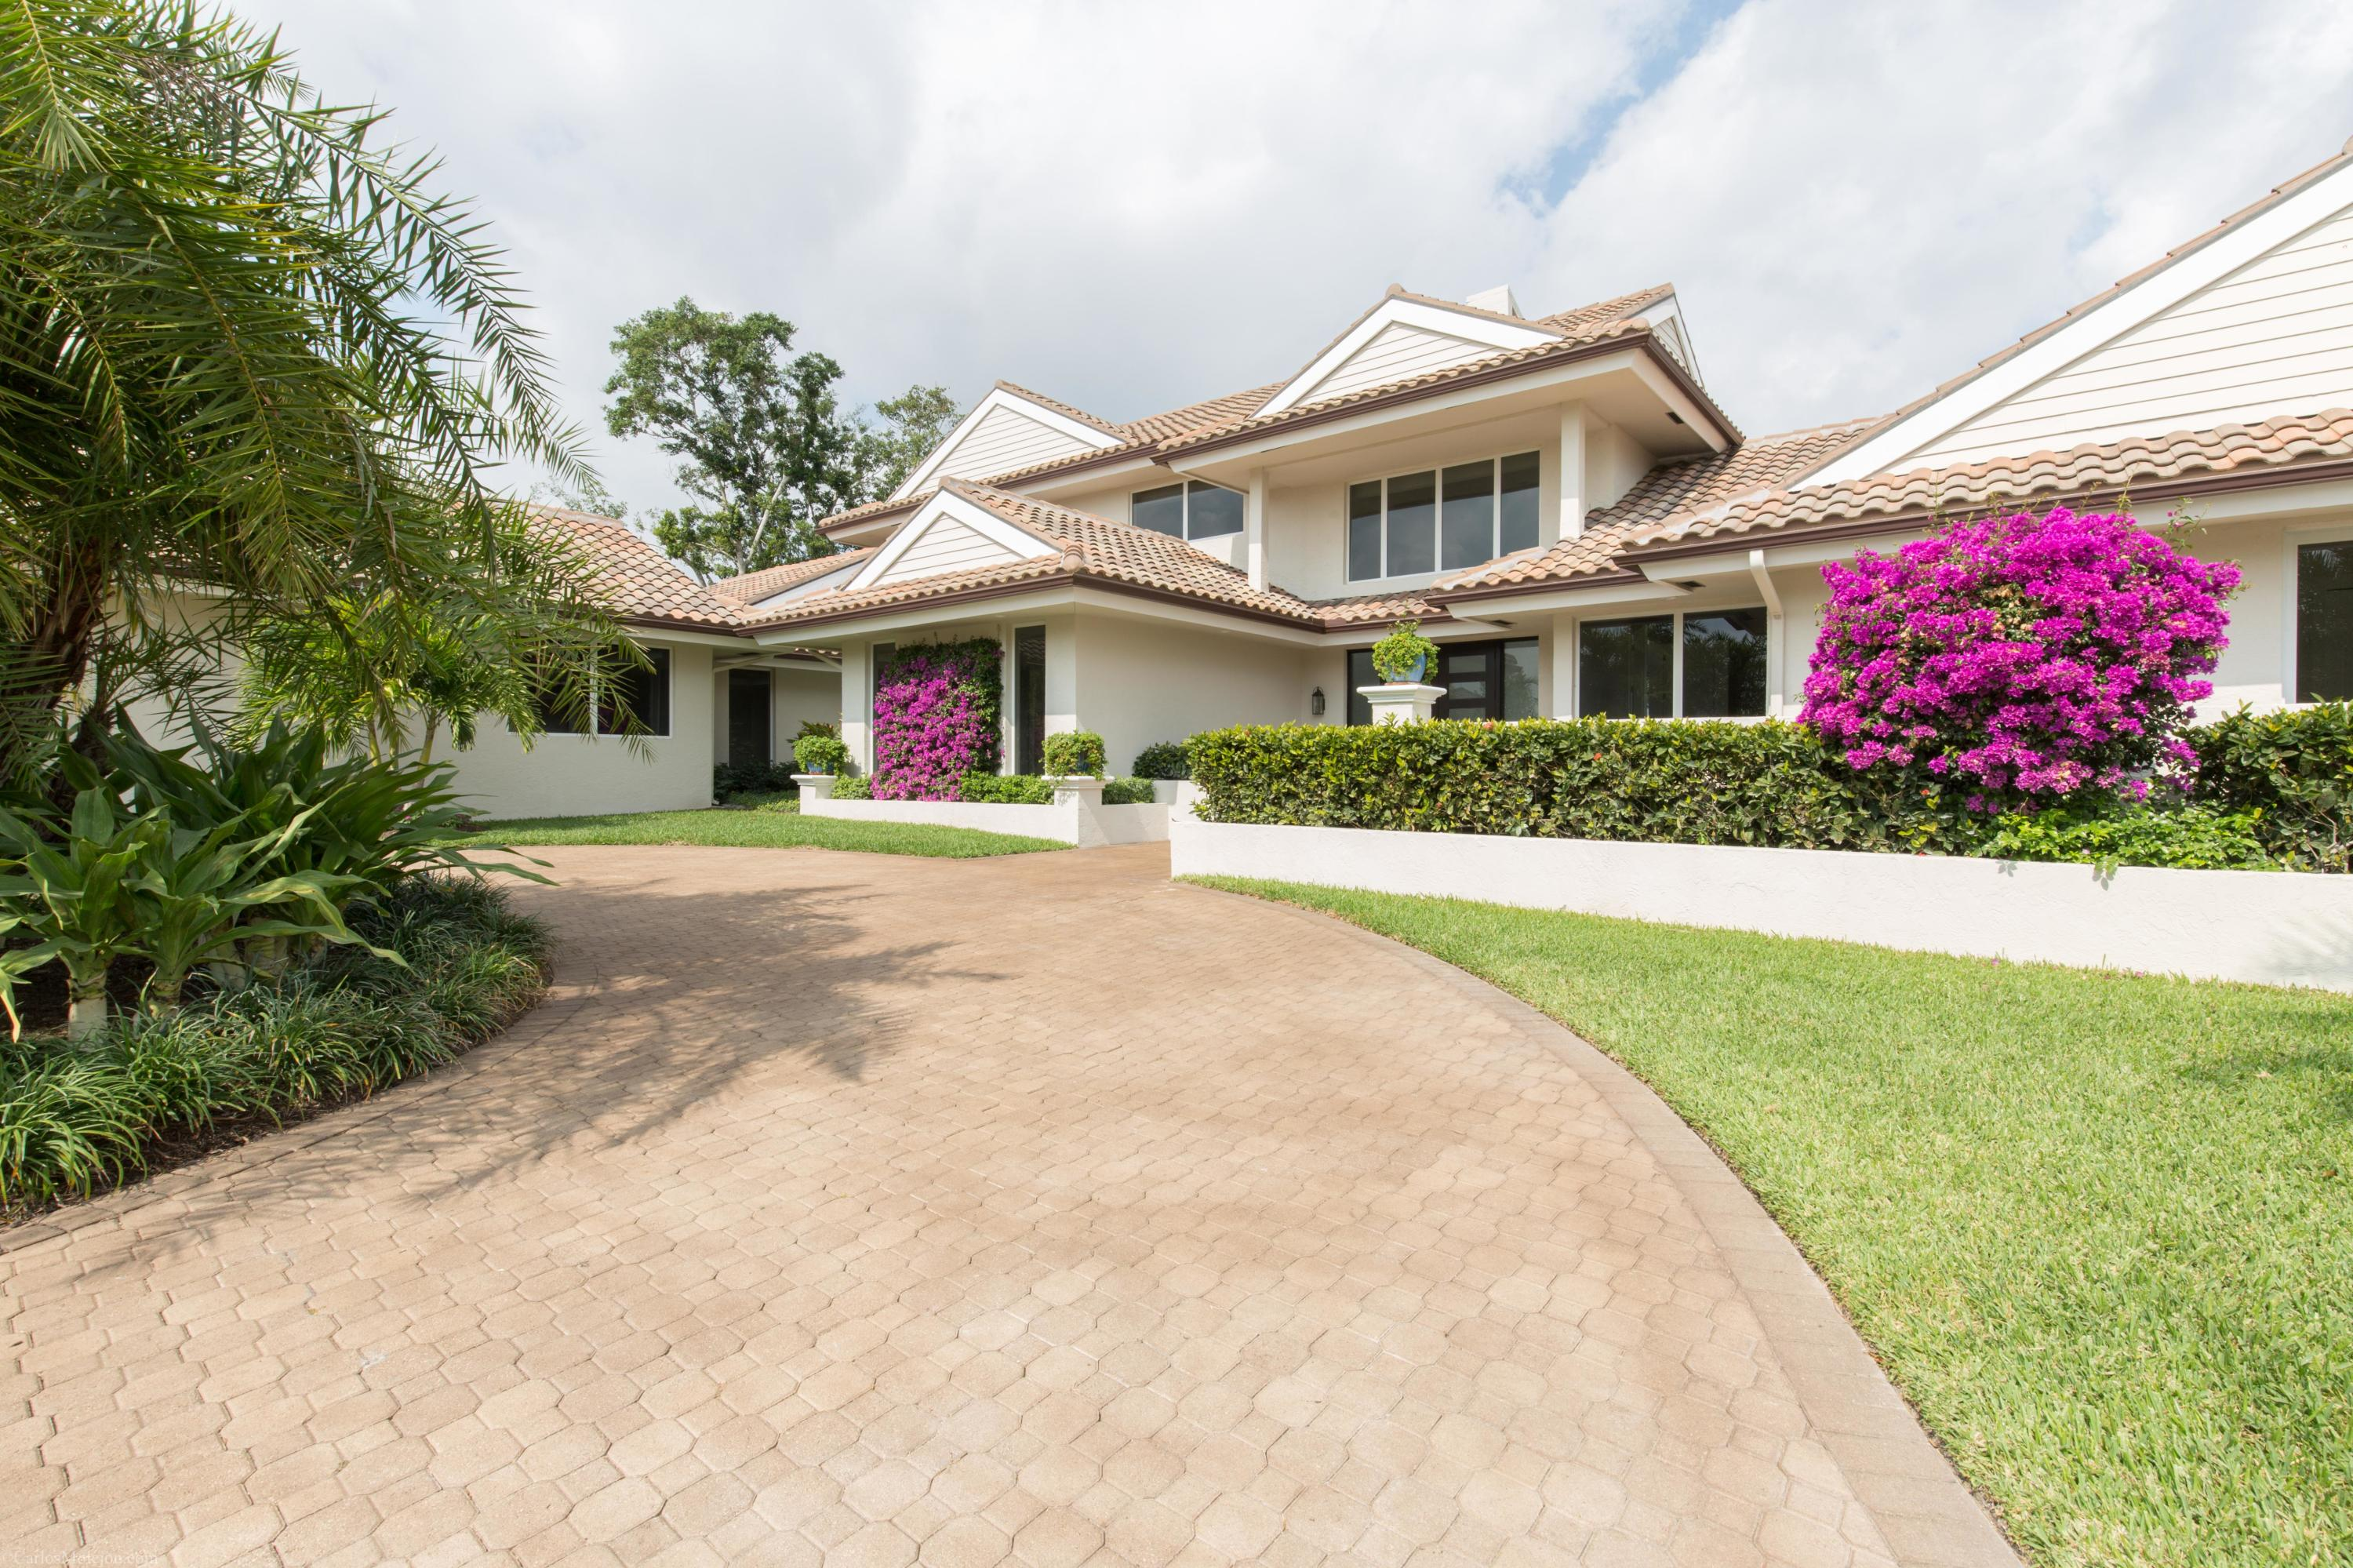 11795 Maidstone Drive, Wellington, Florida 33414, 5 Bedrooms Bedrooms, ,5.2 BathroomsBathrooms,Single Family,For Sale,Palm Beach Polo & Country Club,Maidstone,RX-10416511